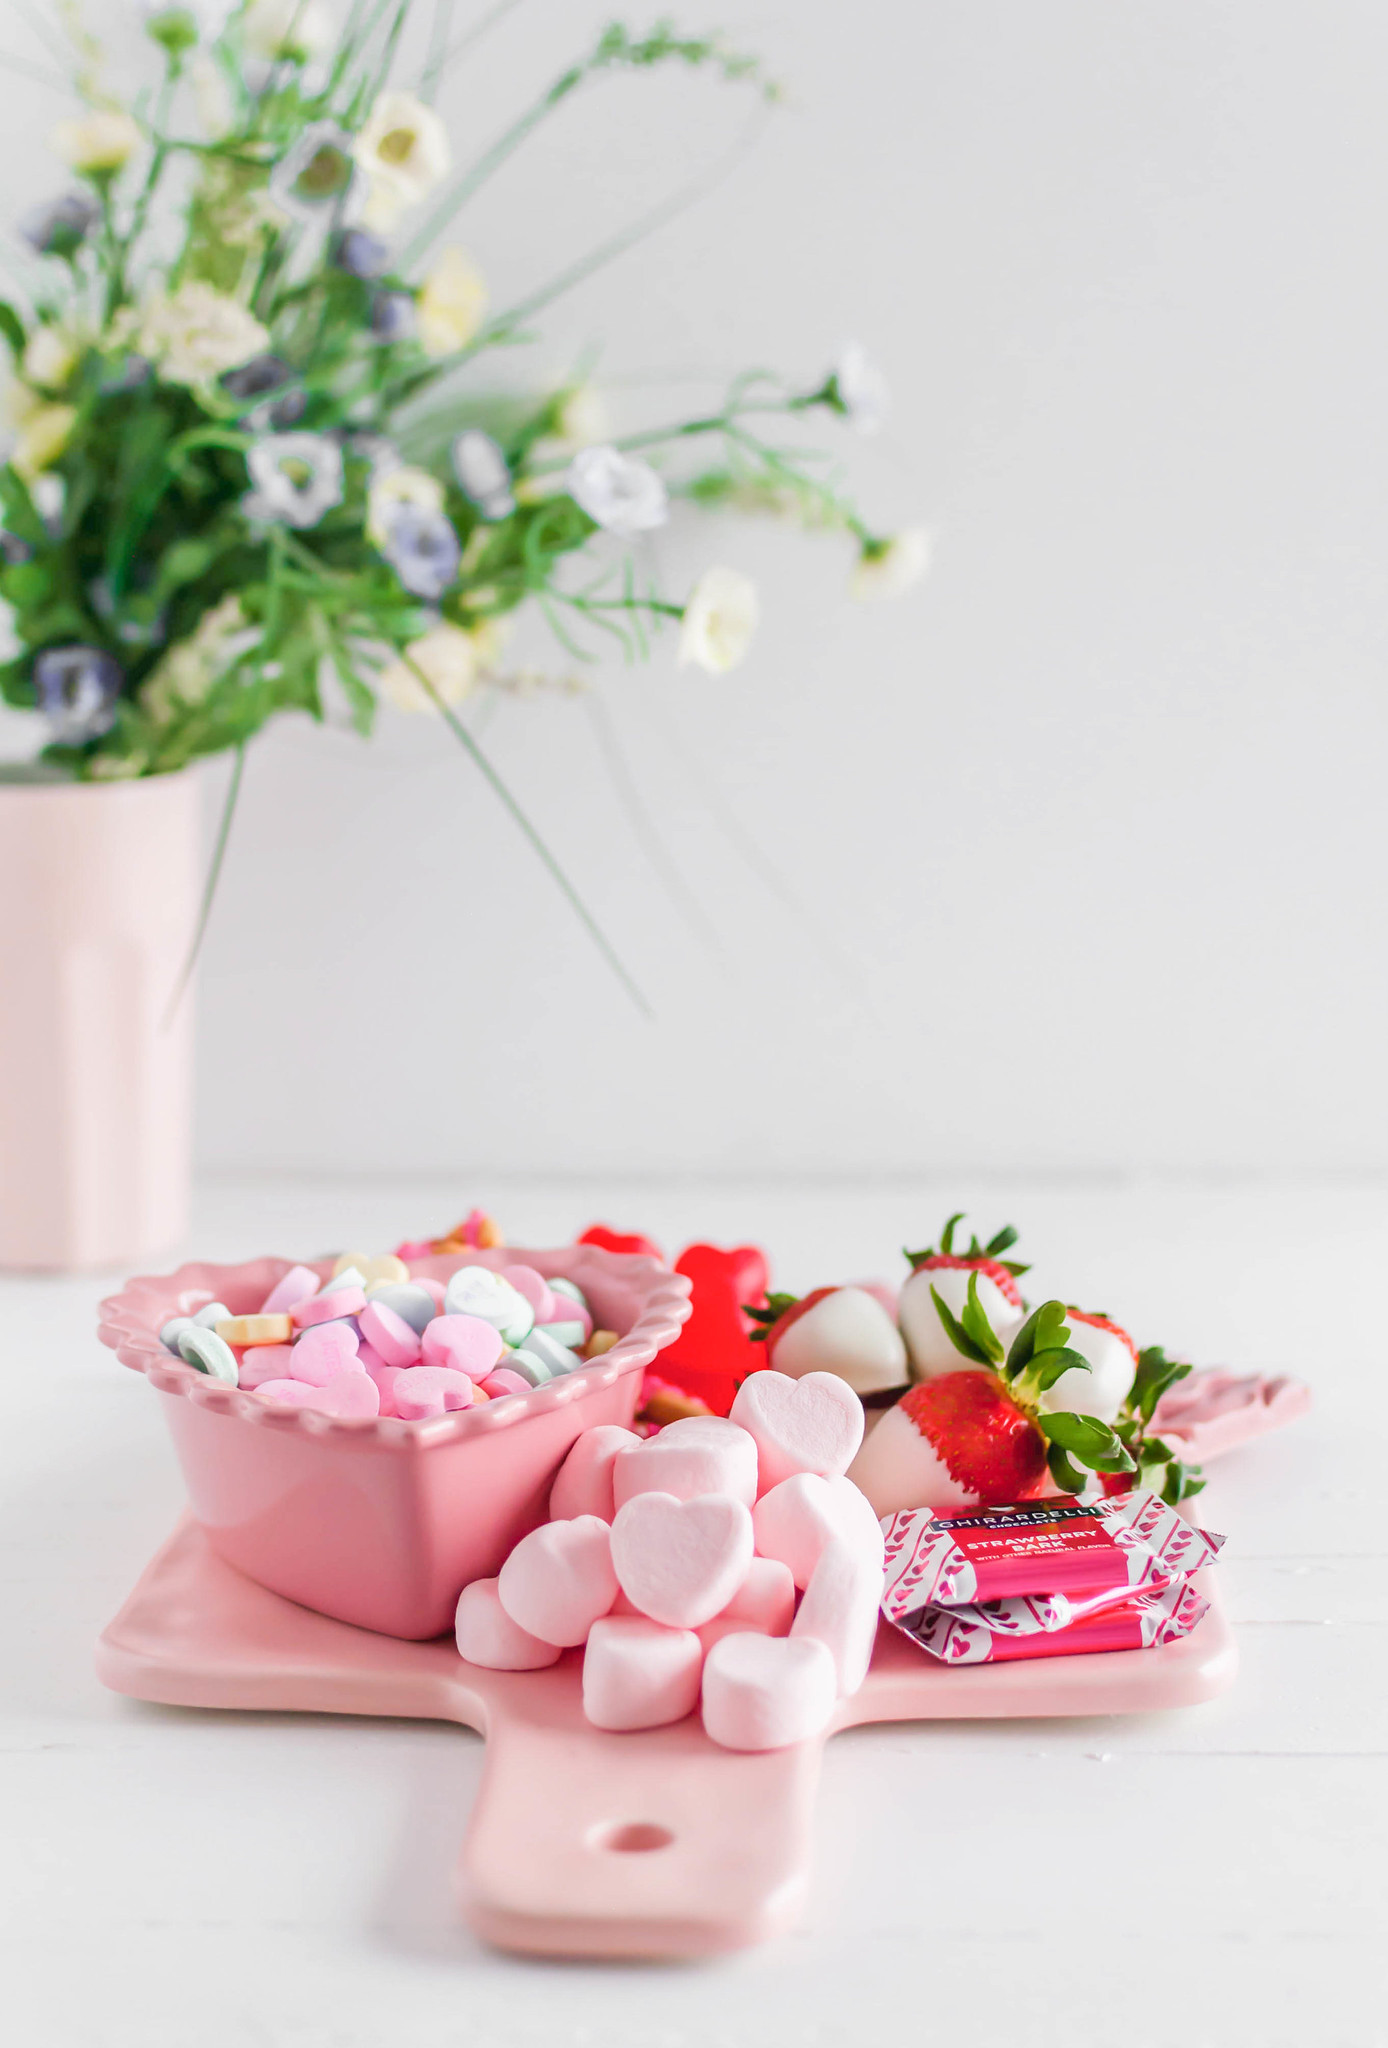 This Valentine's Dessert Board is simple and delicious to put together. A few simple homemade treats filled in with adorable store-bought options.